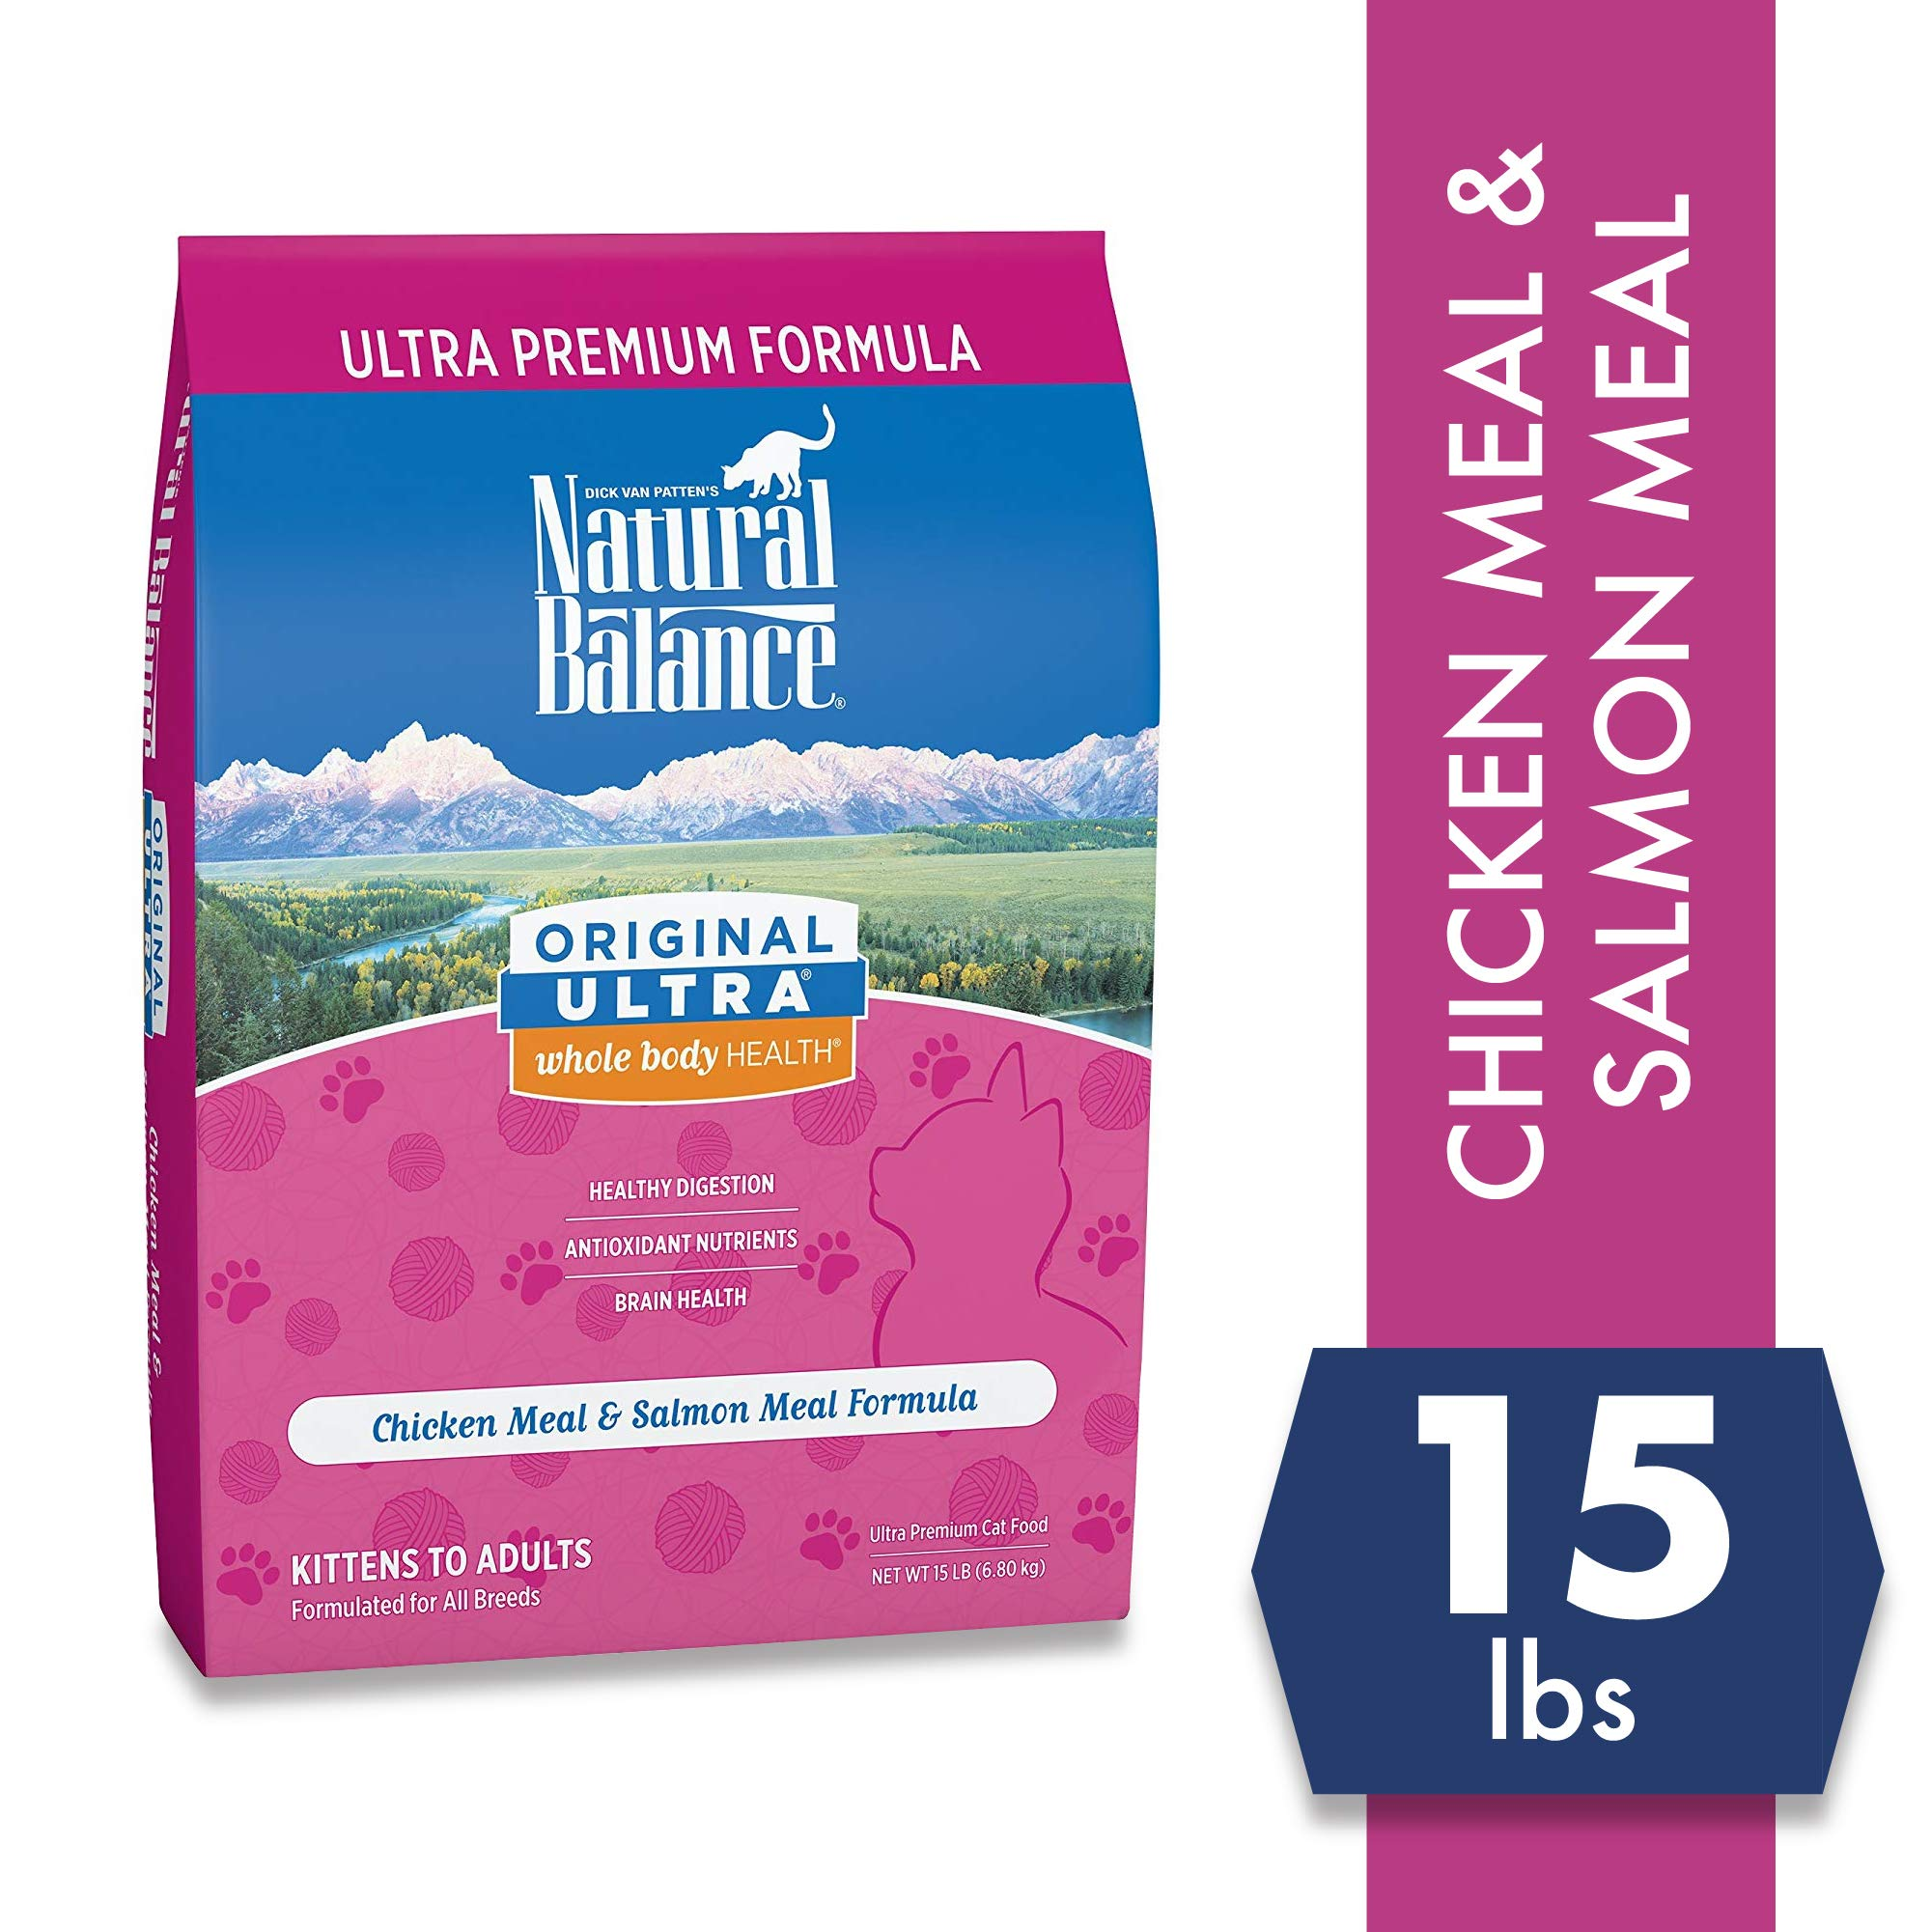 Natural Balance Original Ultra Whole Body Health Chicken Meal & Salmon Meal Formula Dry Cat Food, 15 Pounds by Natural Balance